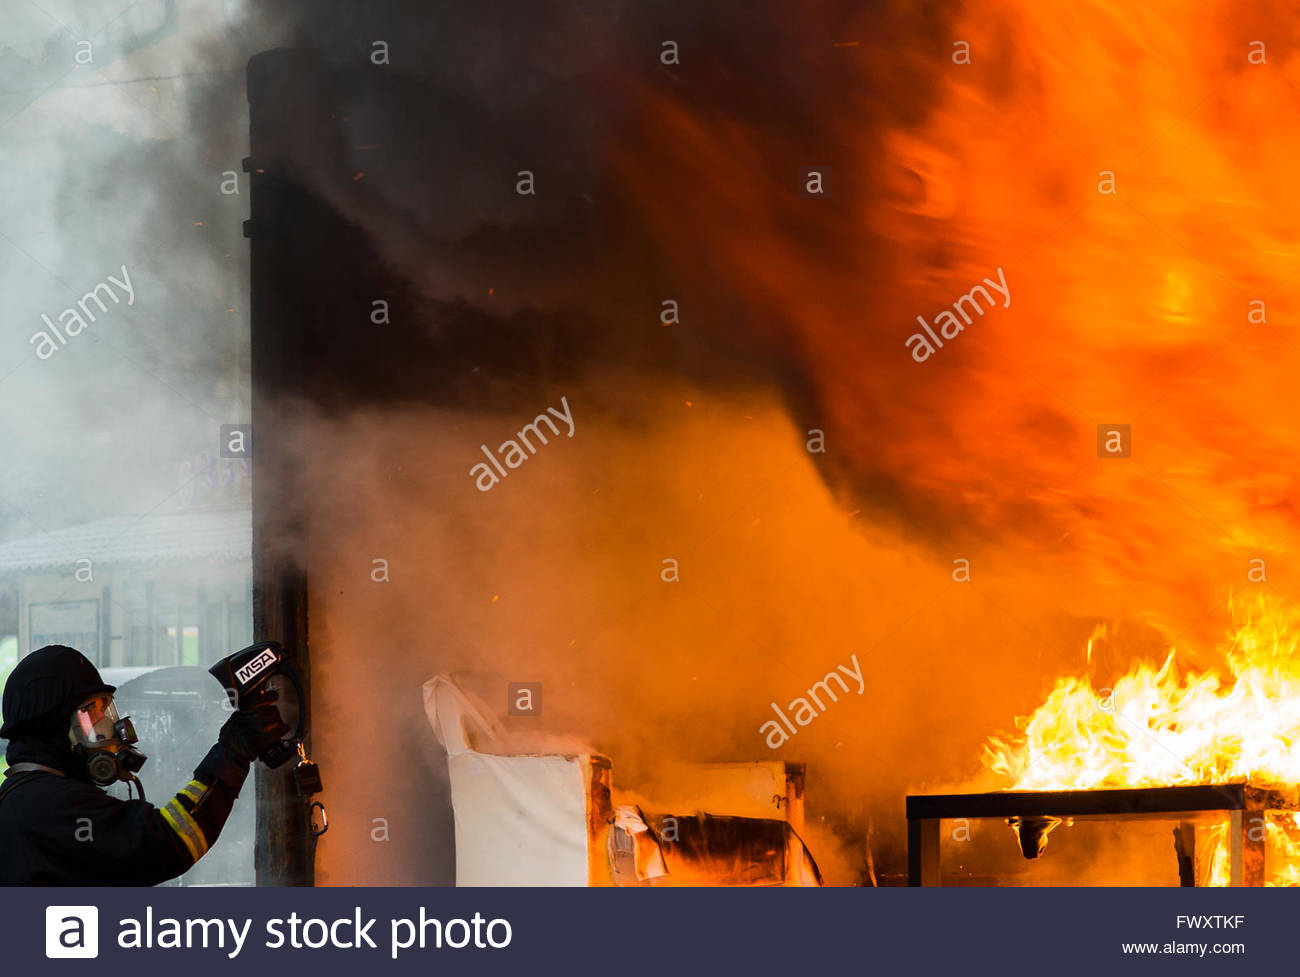 Sweden, Sodermanland, Firefighter using thermal imaging camera standing by fire - Stock Image